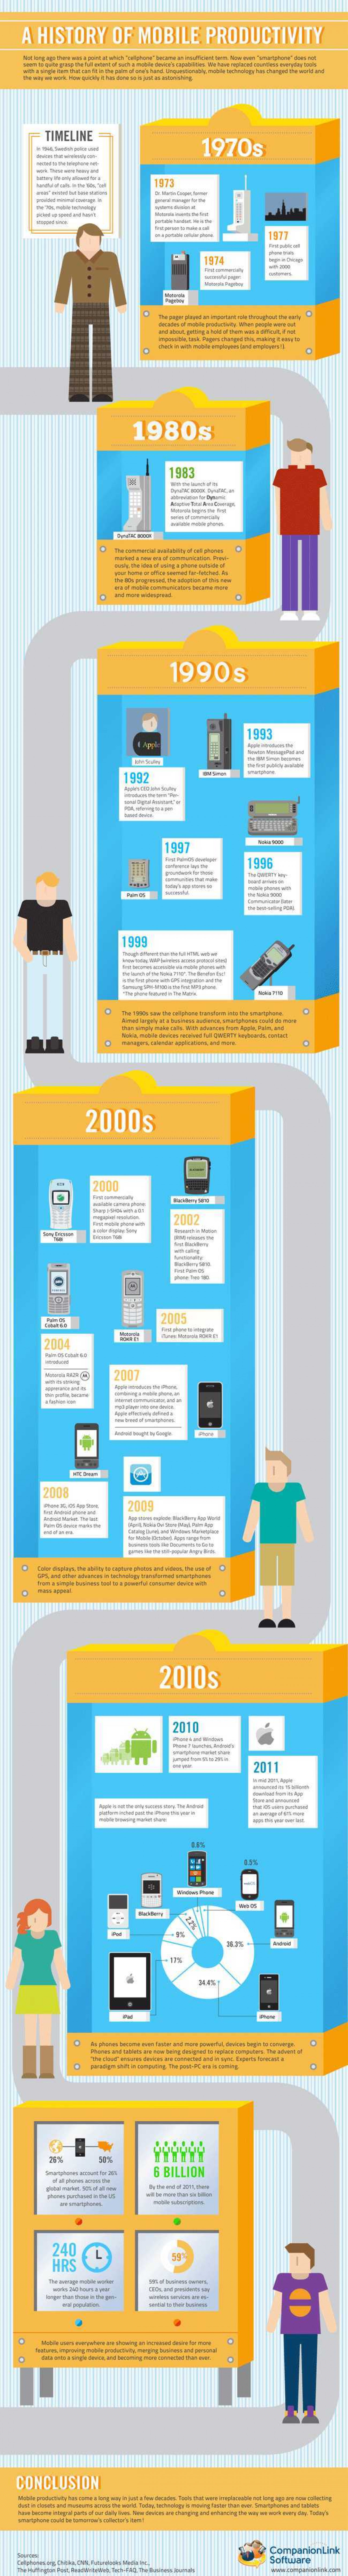 Mobile Productivity History Infographic